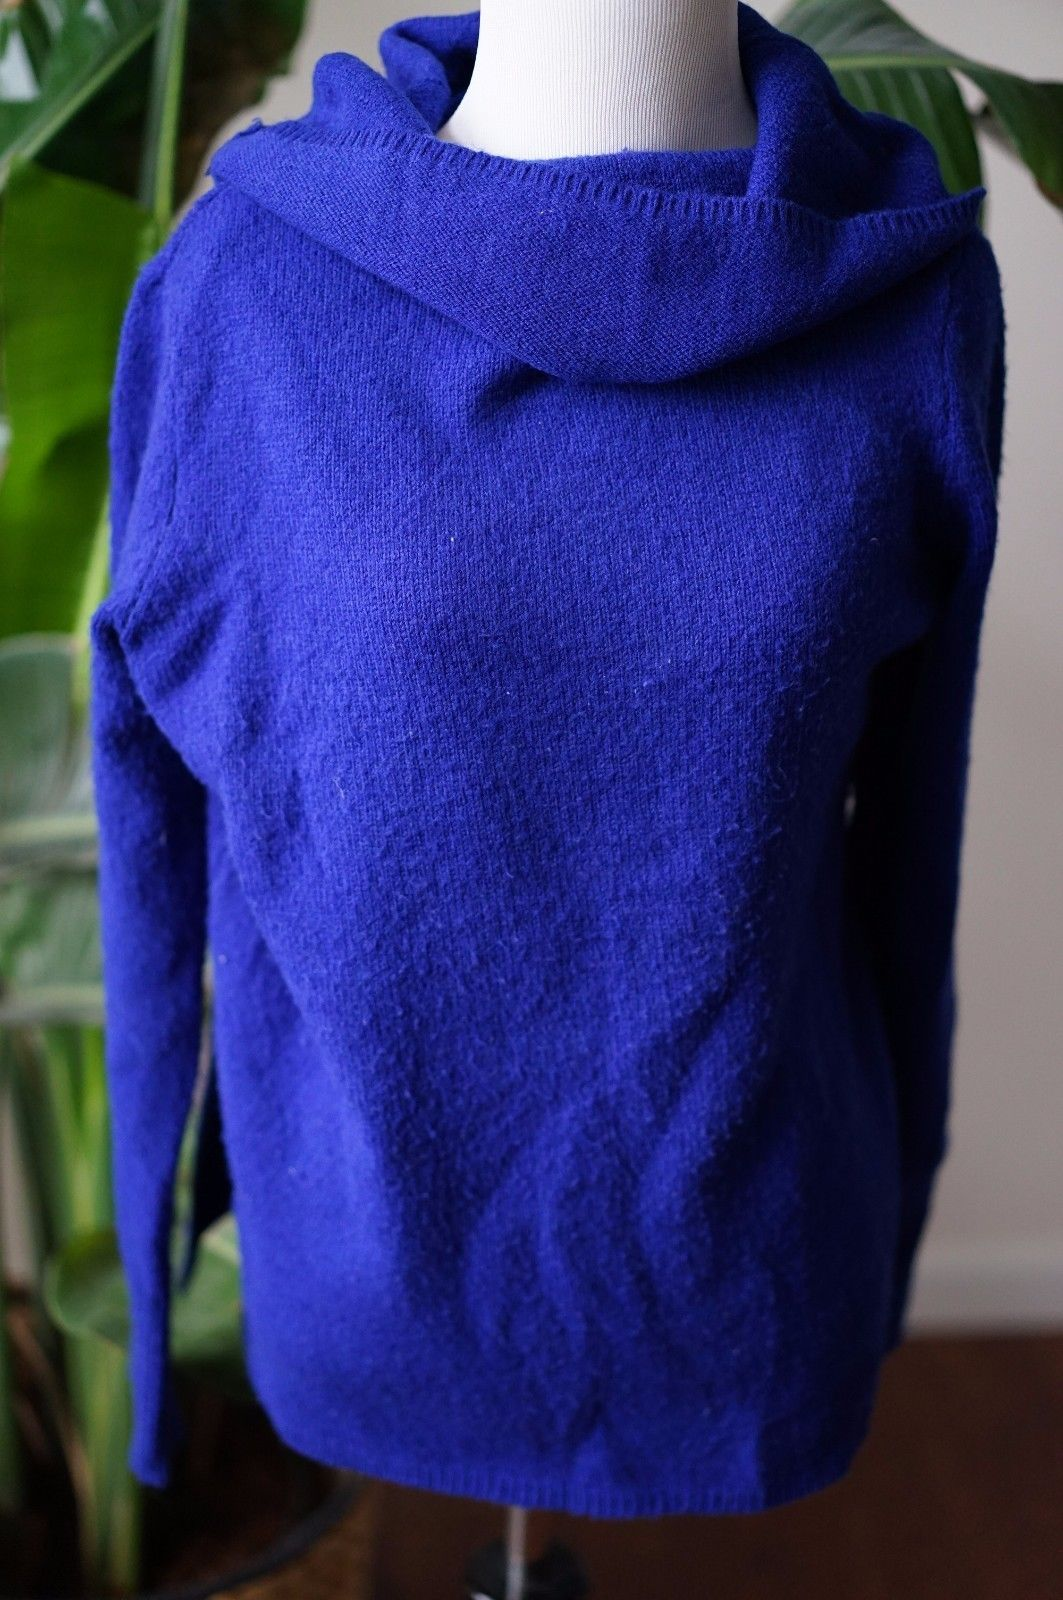 Primary image for DKNY Jeans wool blend sz M blue cowlneck turtleneck sweater